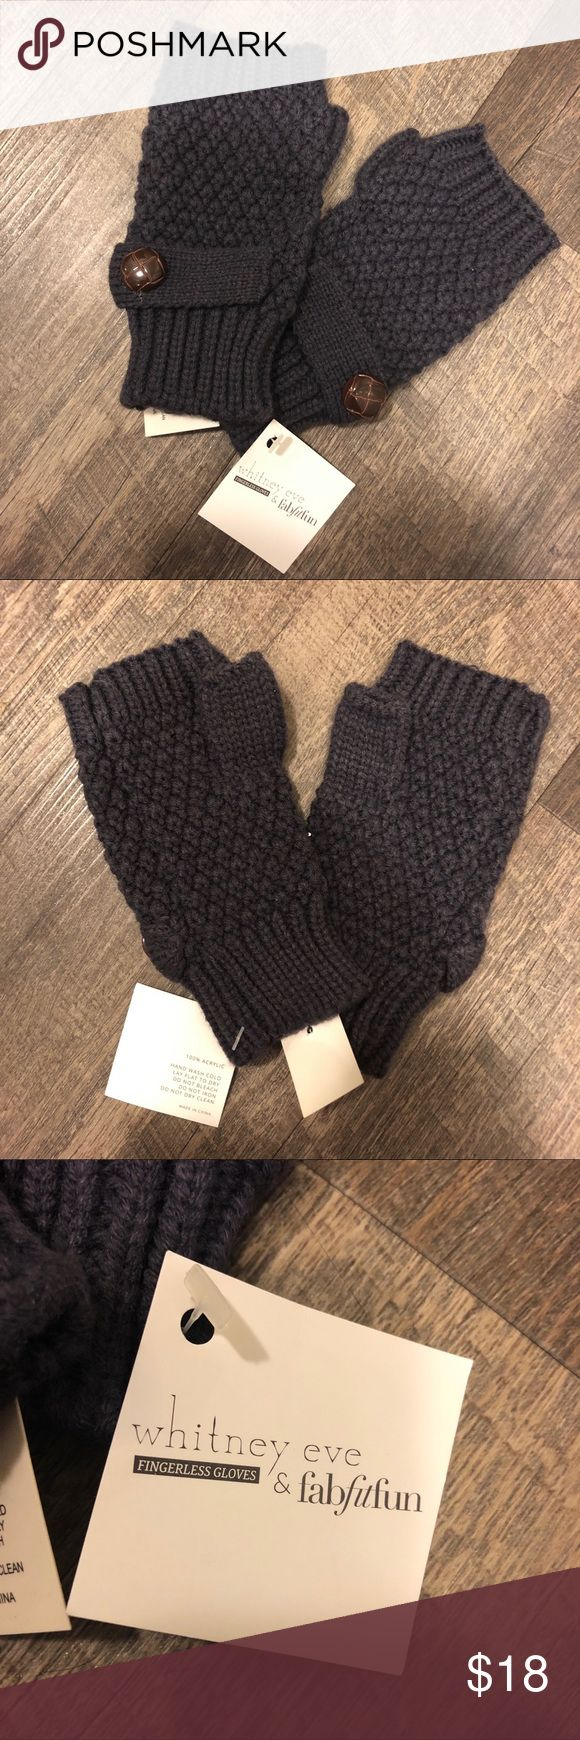 NWT Whitney Eve Gray Knit Fingerless Gloves New with tags. Whitney Eve Gray Knit Fingerless Gloves. Perfect condition. Whitney Eve Accessories Gloves & Mittens